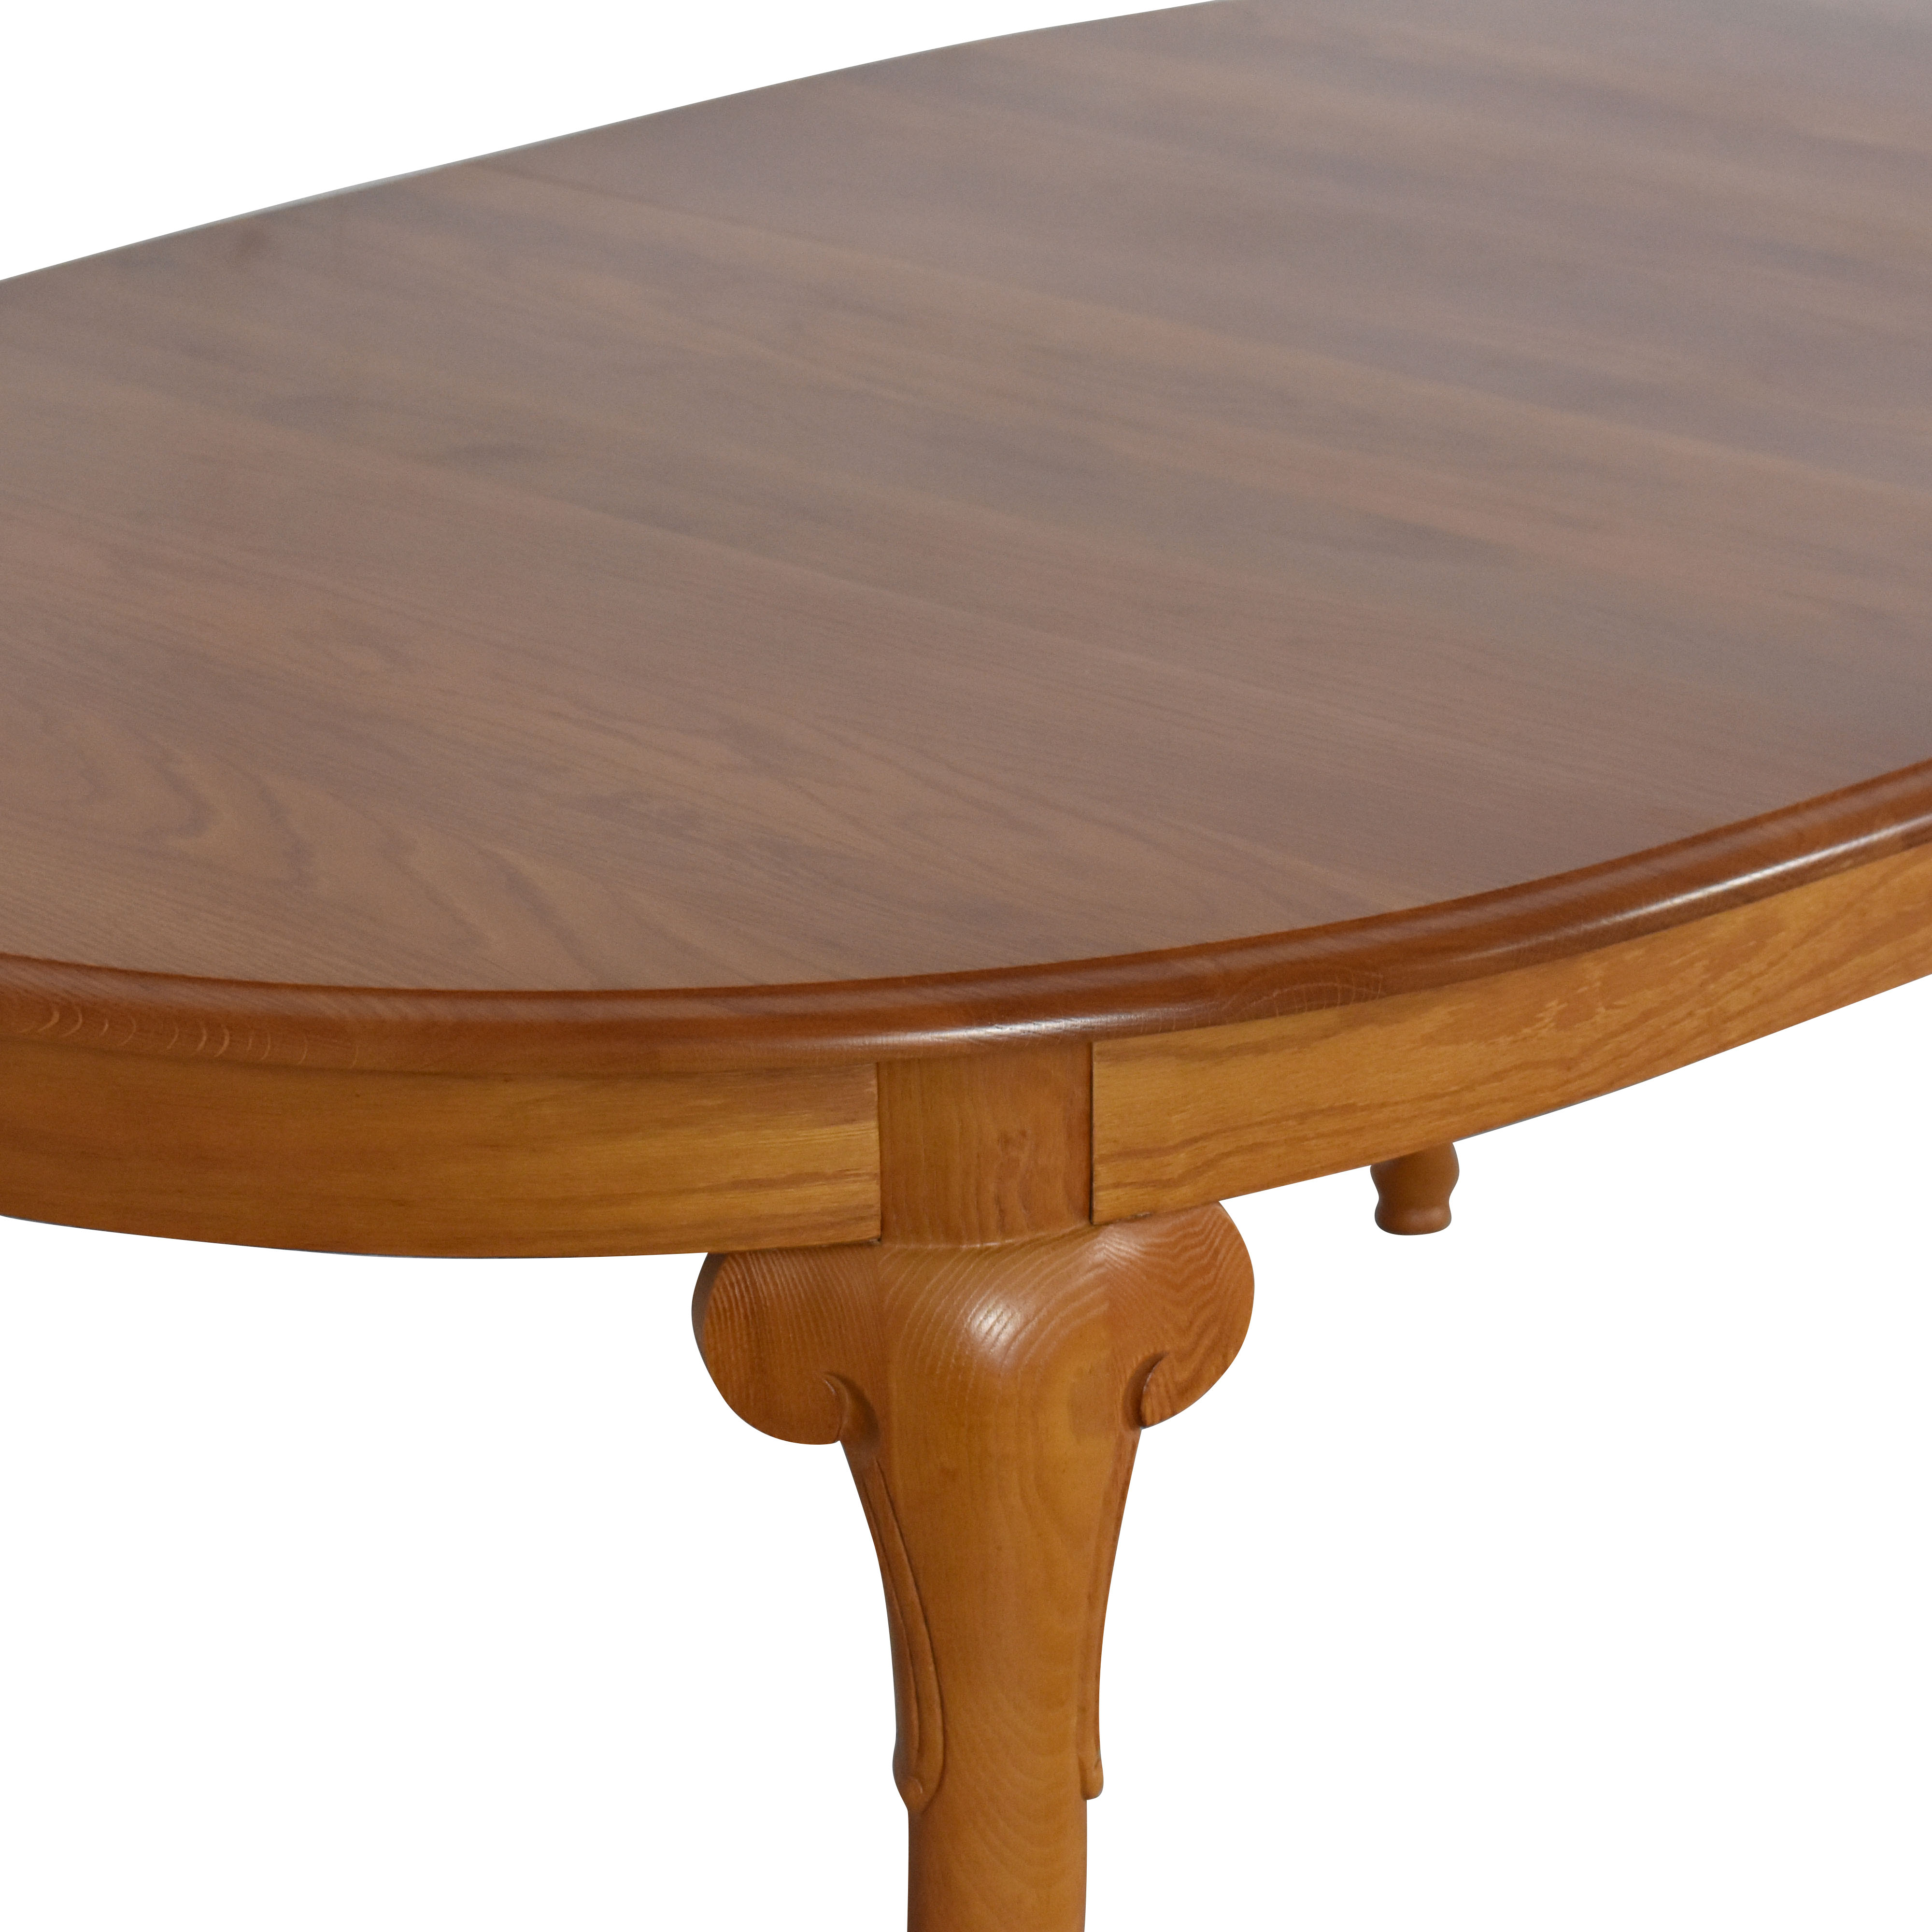 Sumter Cabinet Co. Sumter Cabiniet Company Dinner Table ma